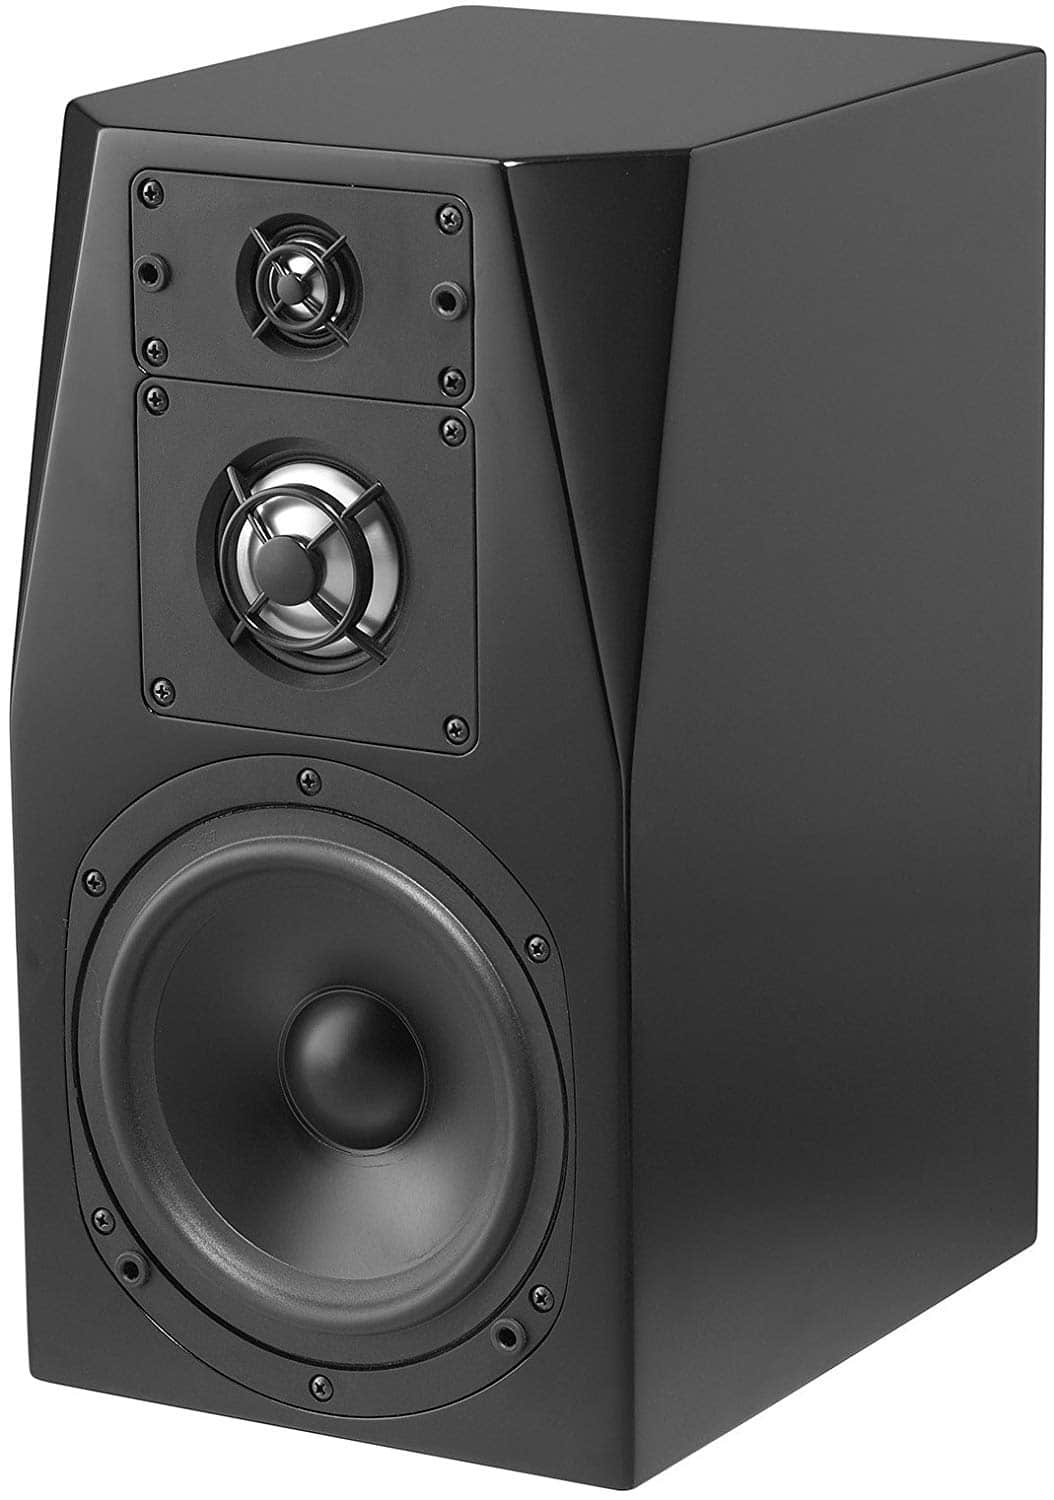 NHT C-3 3 way audiophile bookshelf speaker in gloss black $278.81 each shipped sold by Amazon